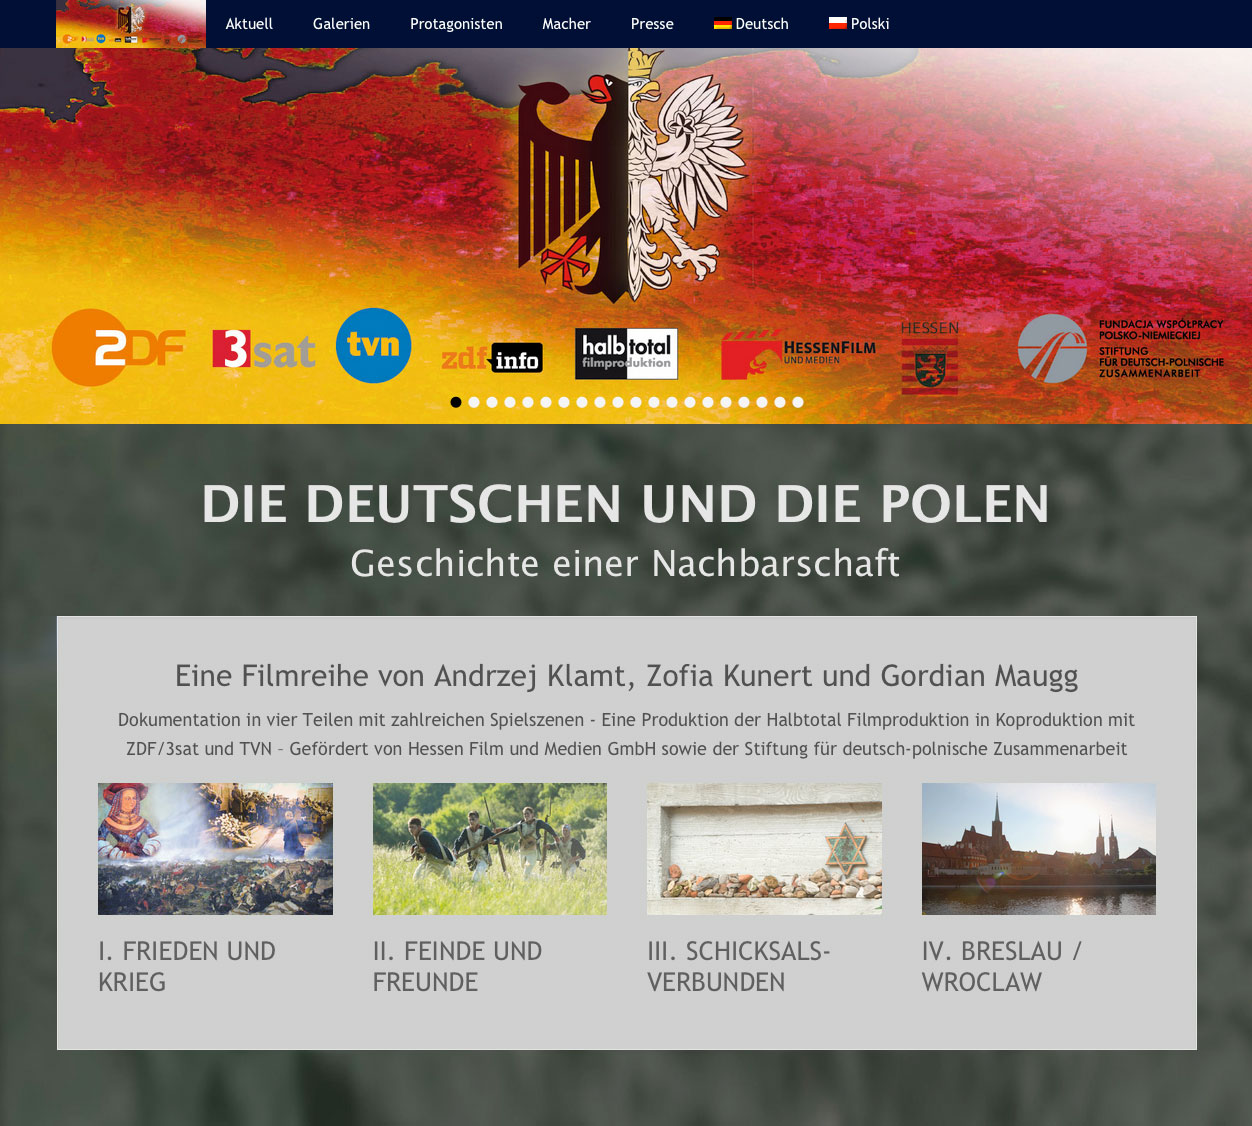 deutsche-polen-eu-screen